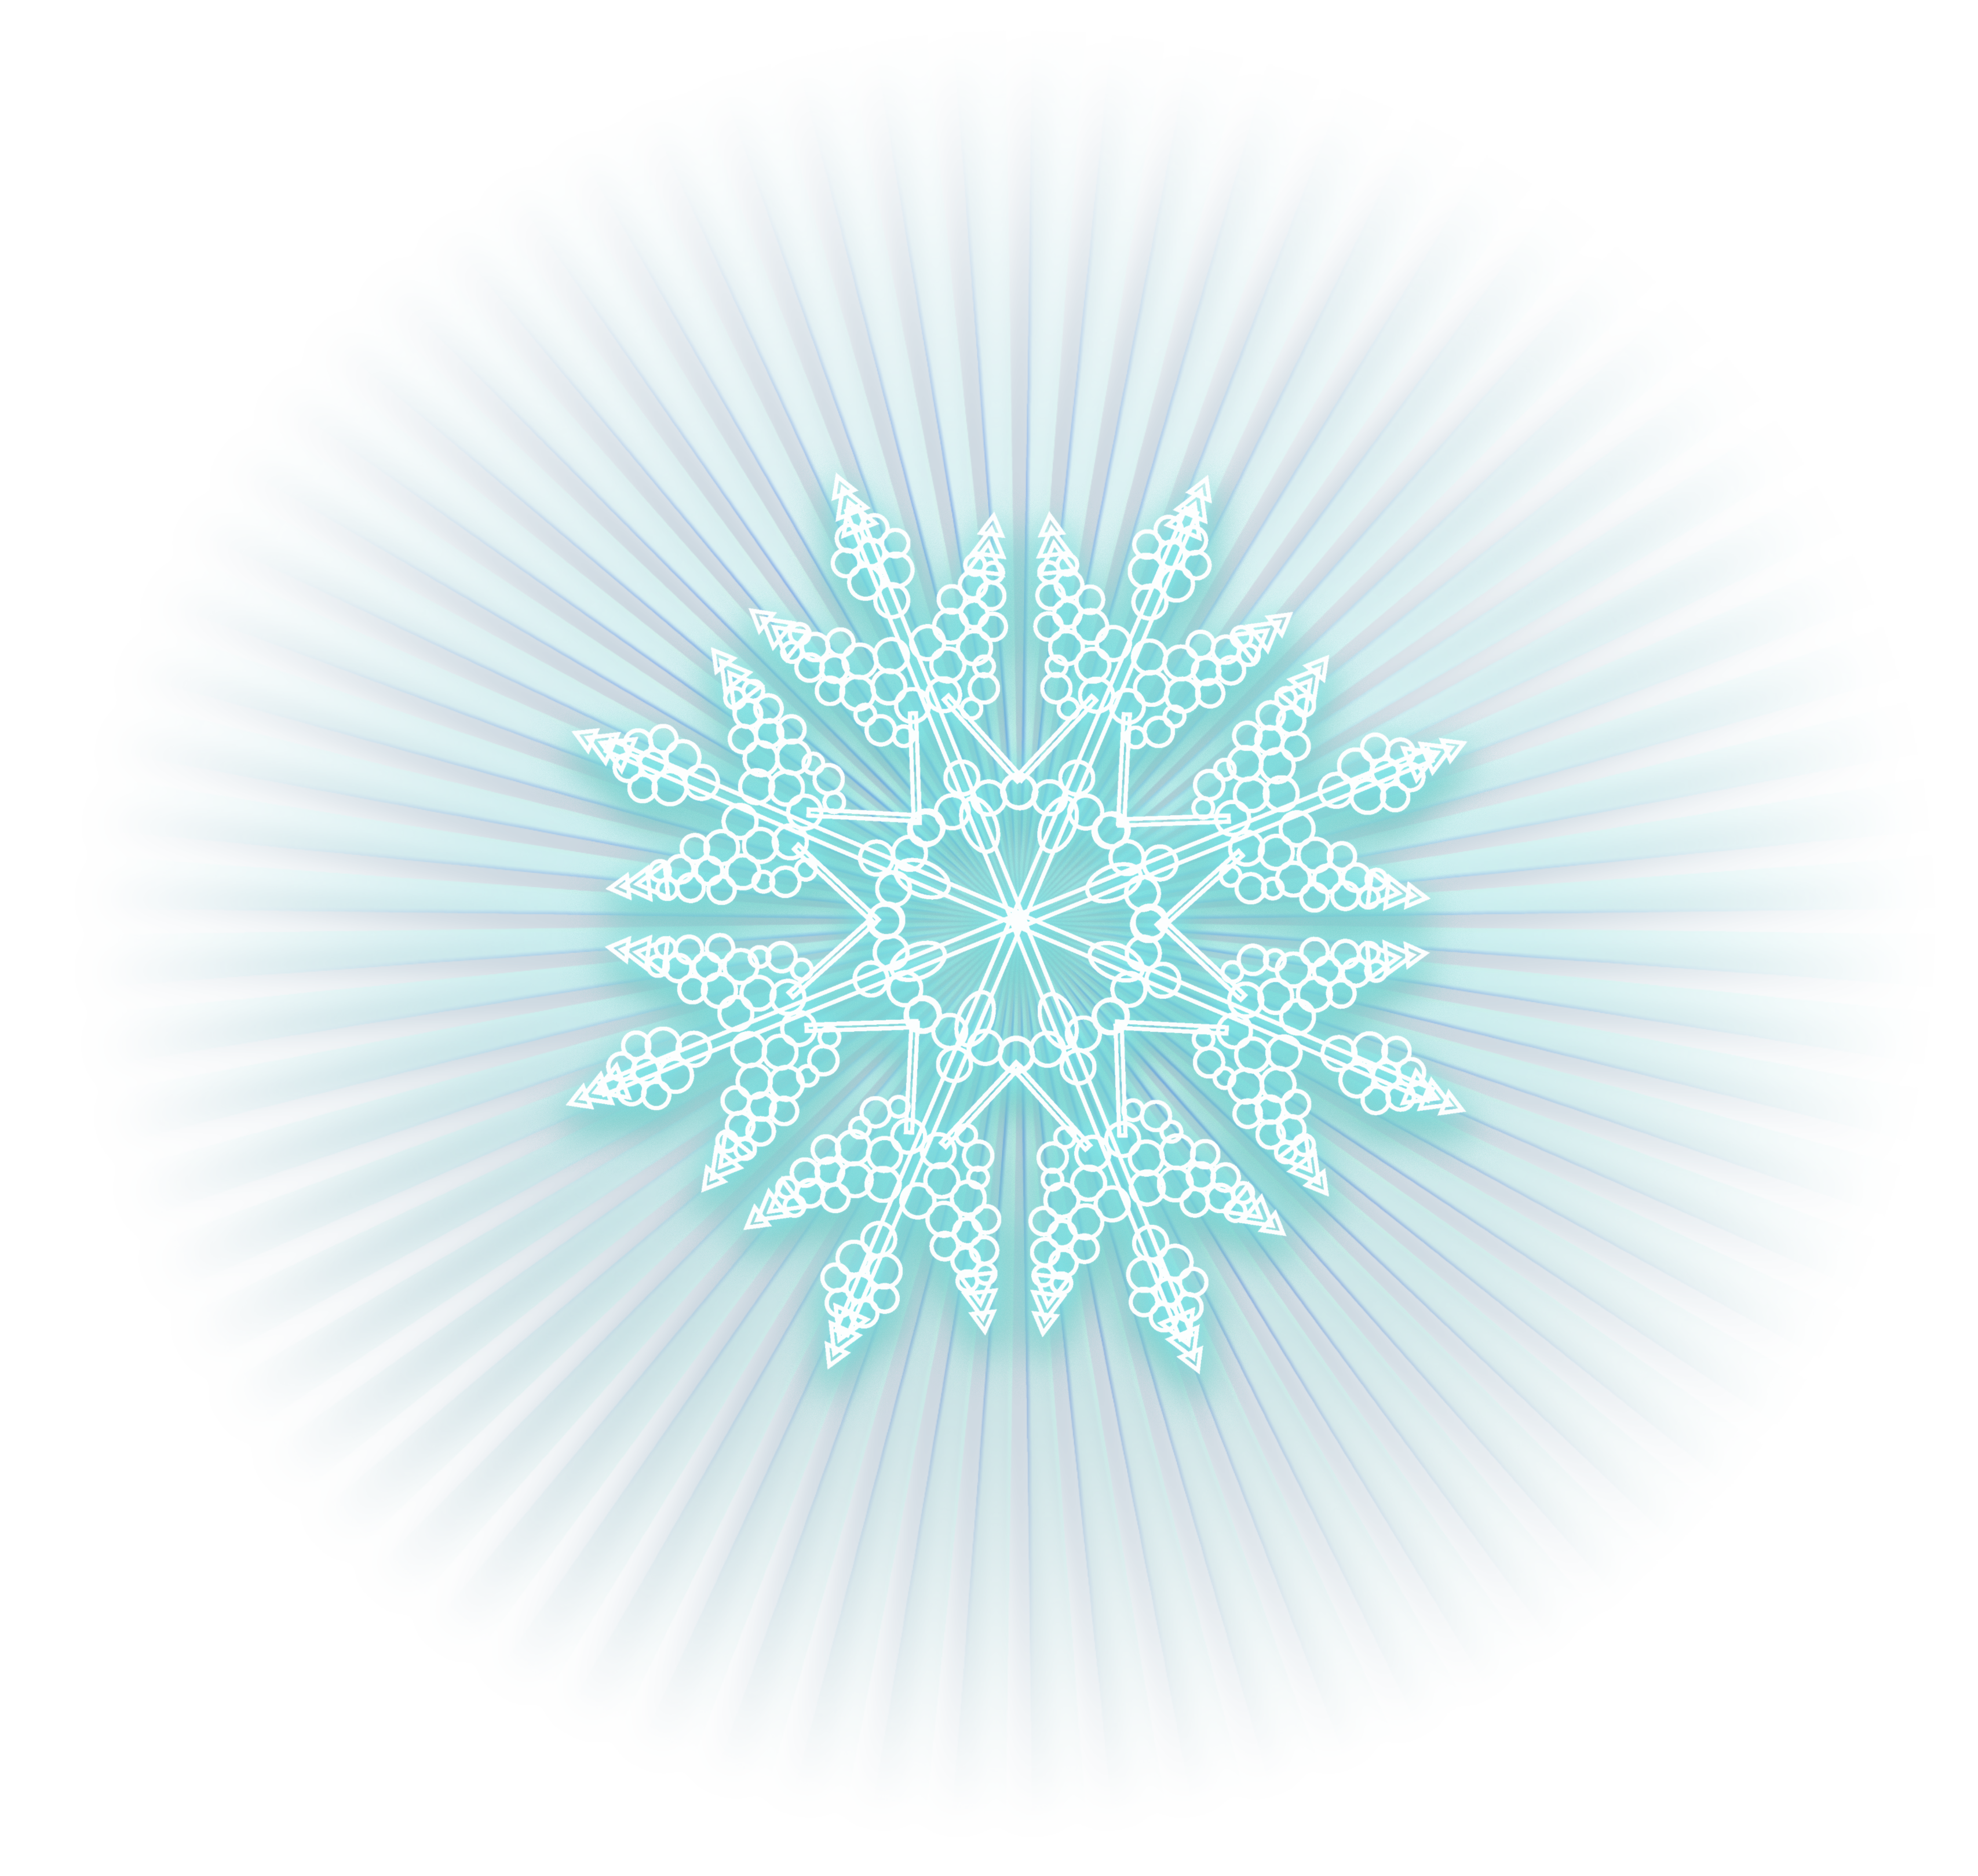 Ice blue clipart - Clipground